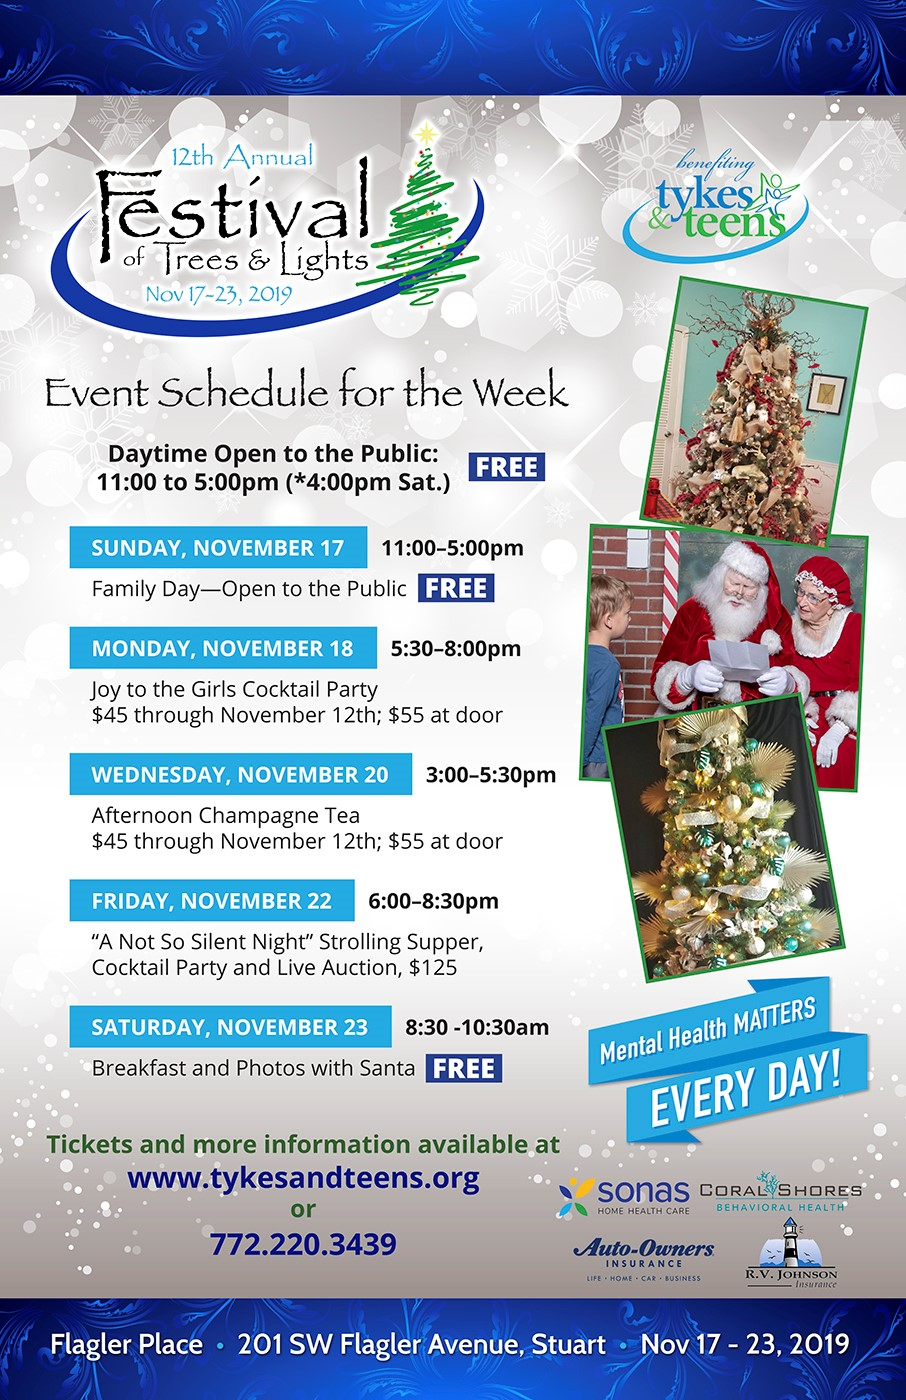 Festival of Trees & Lights Begins November 17th in Downtown Stuart